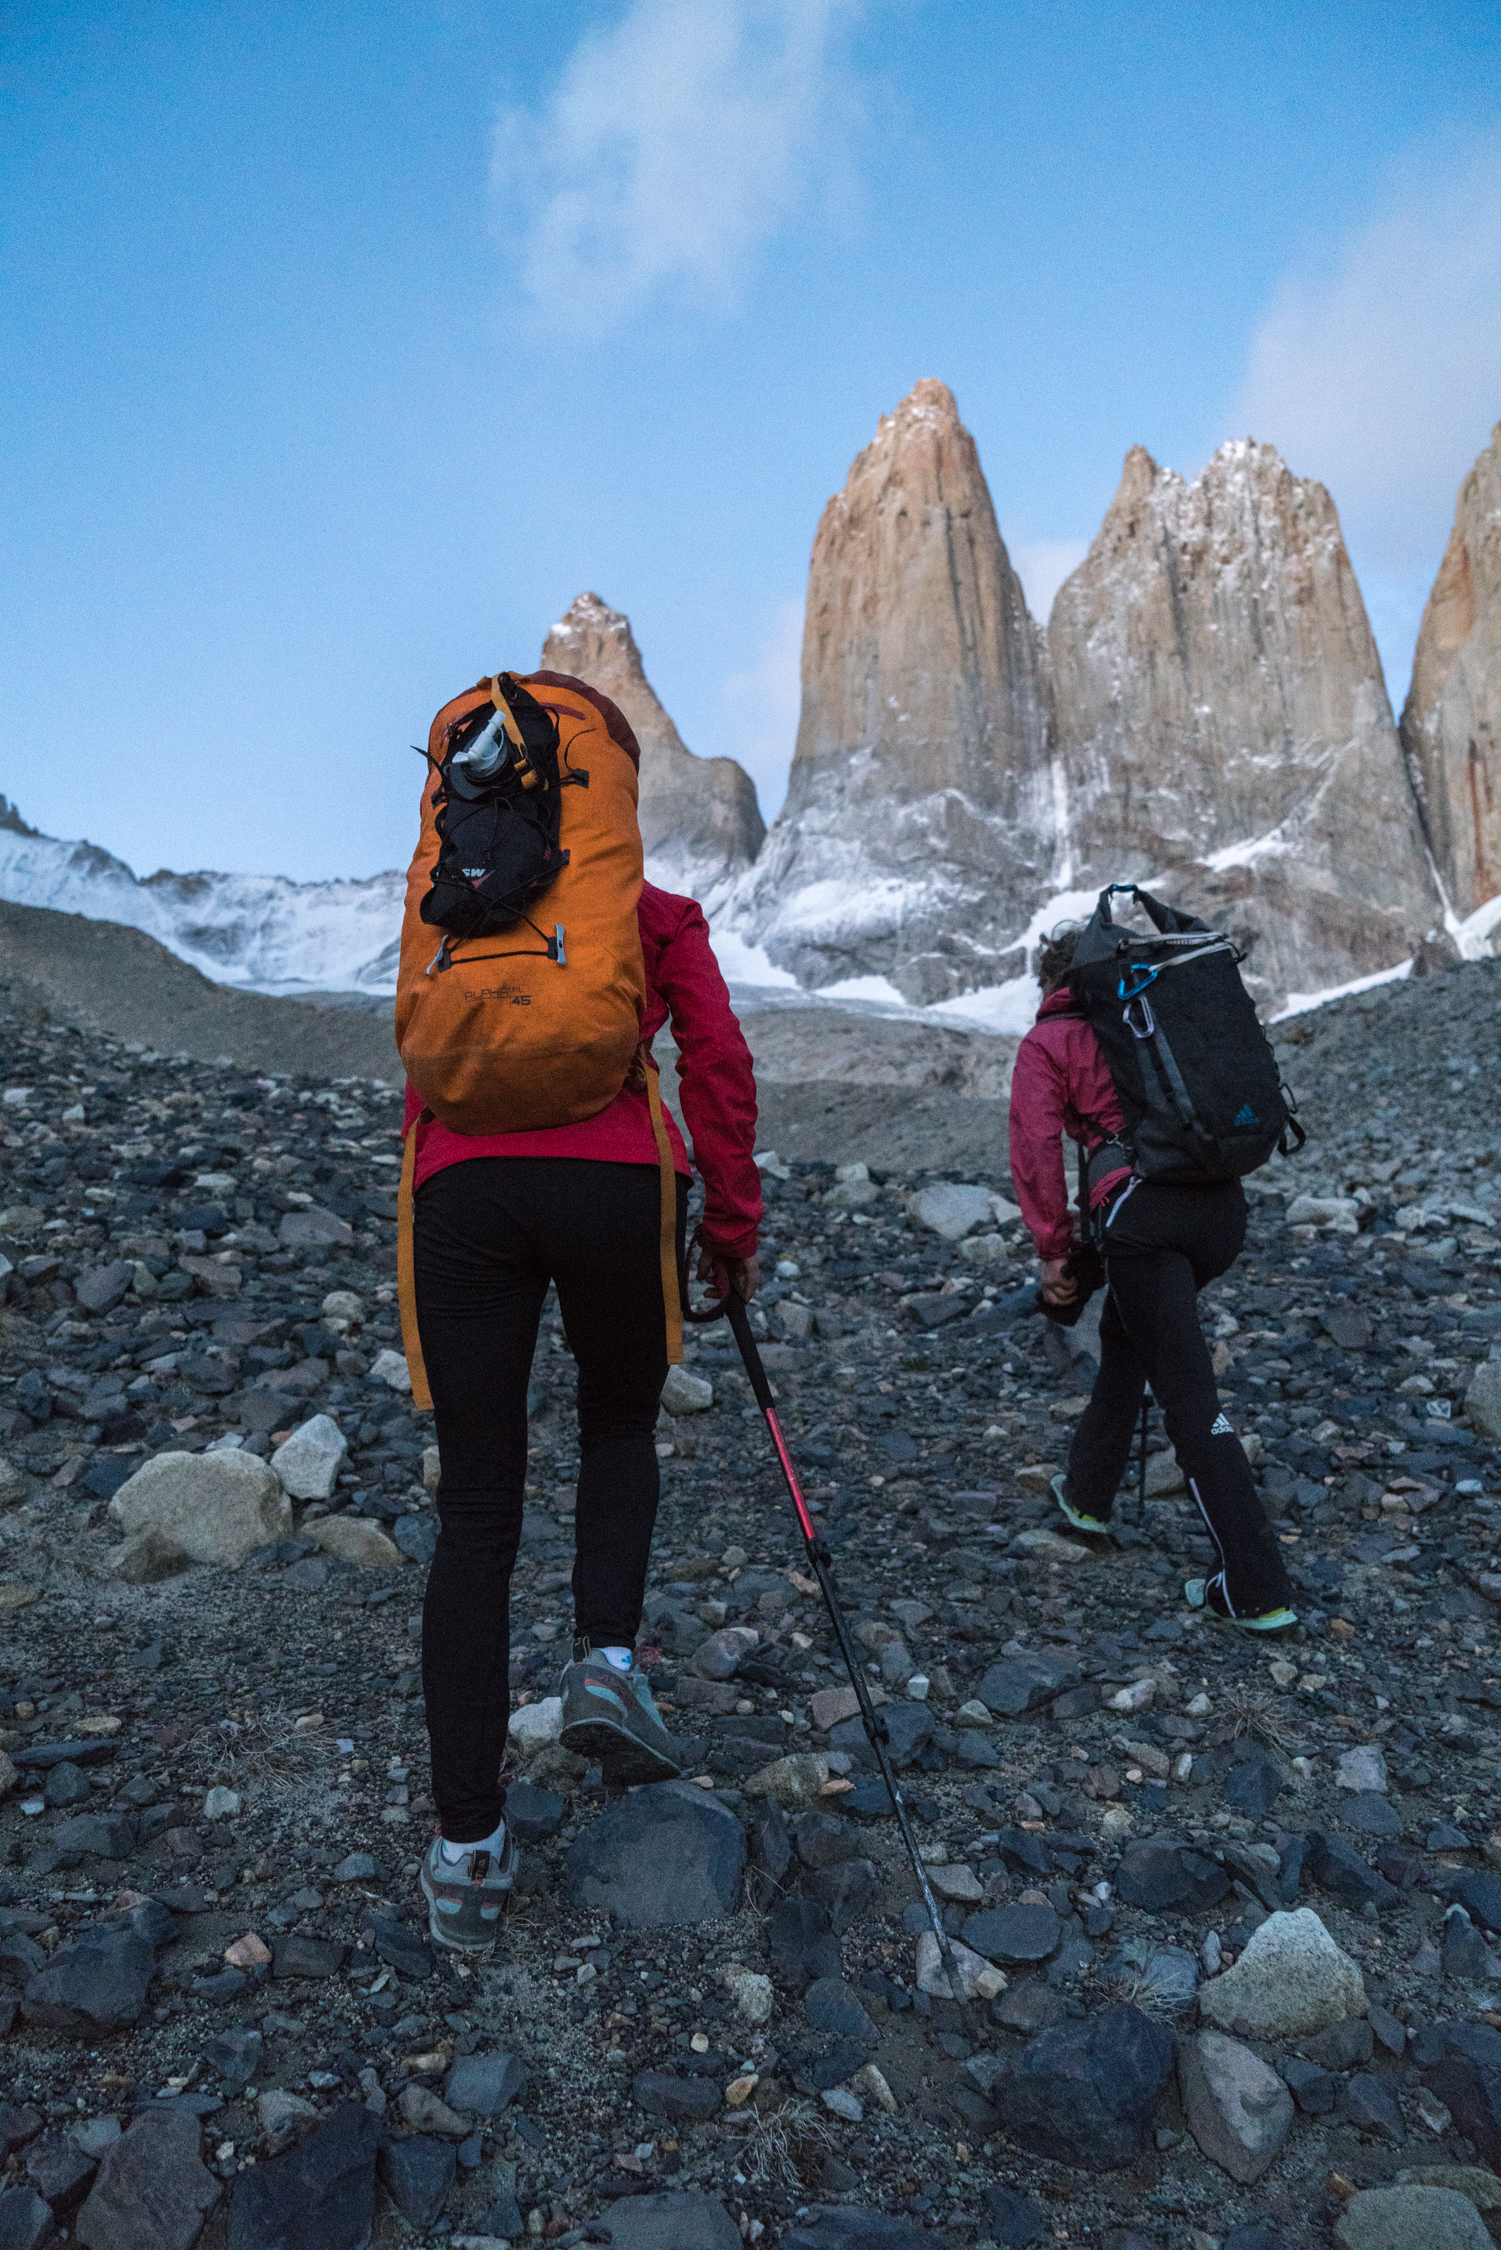 Approaching the Torres del Paine: Torre Central is in the middle. [Photo] Drew Smith